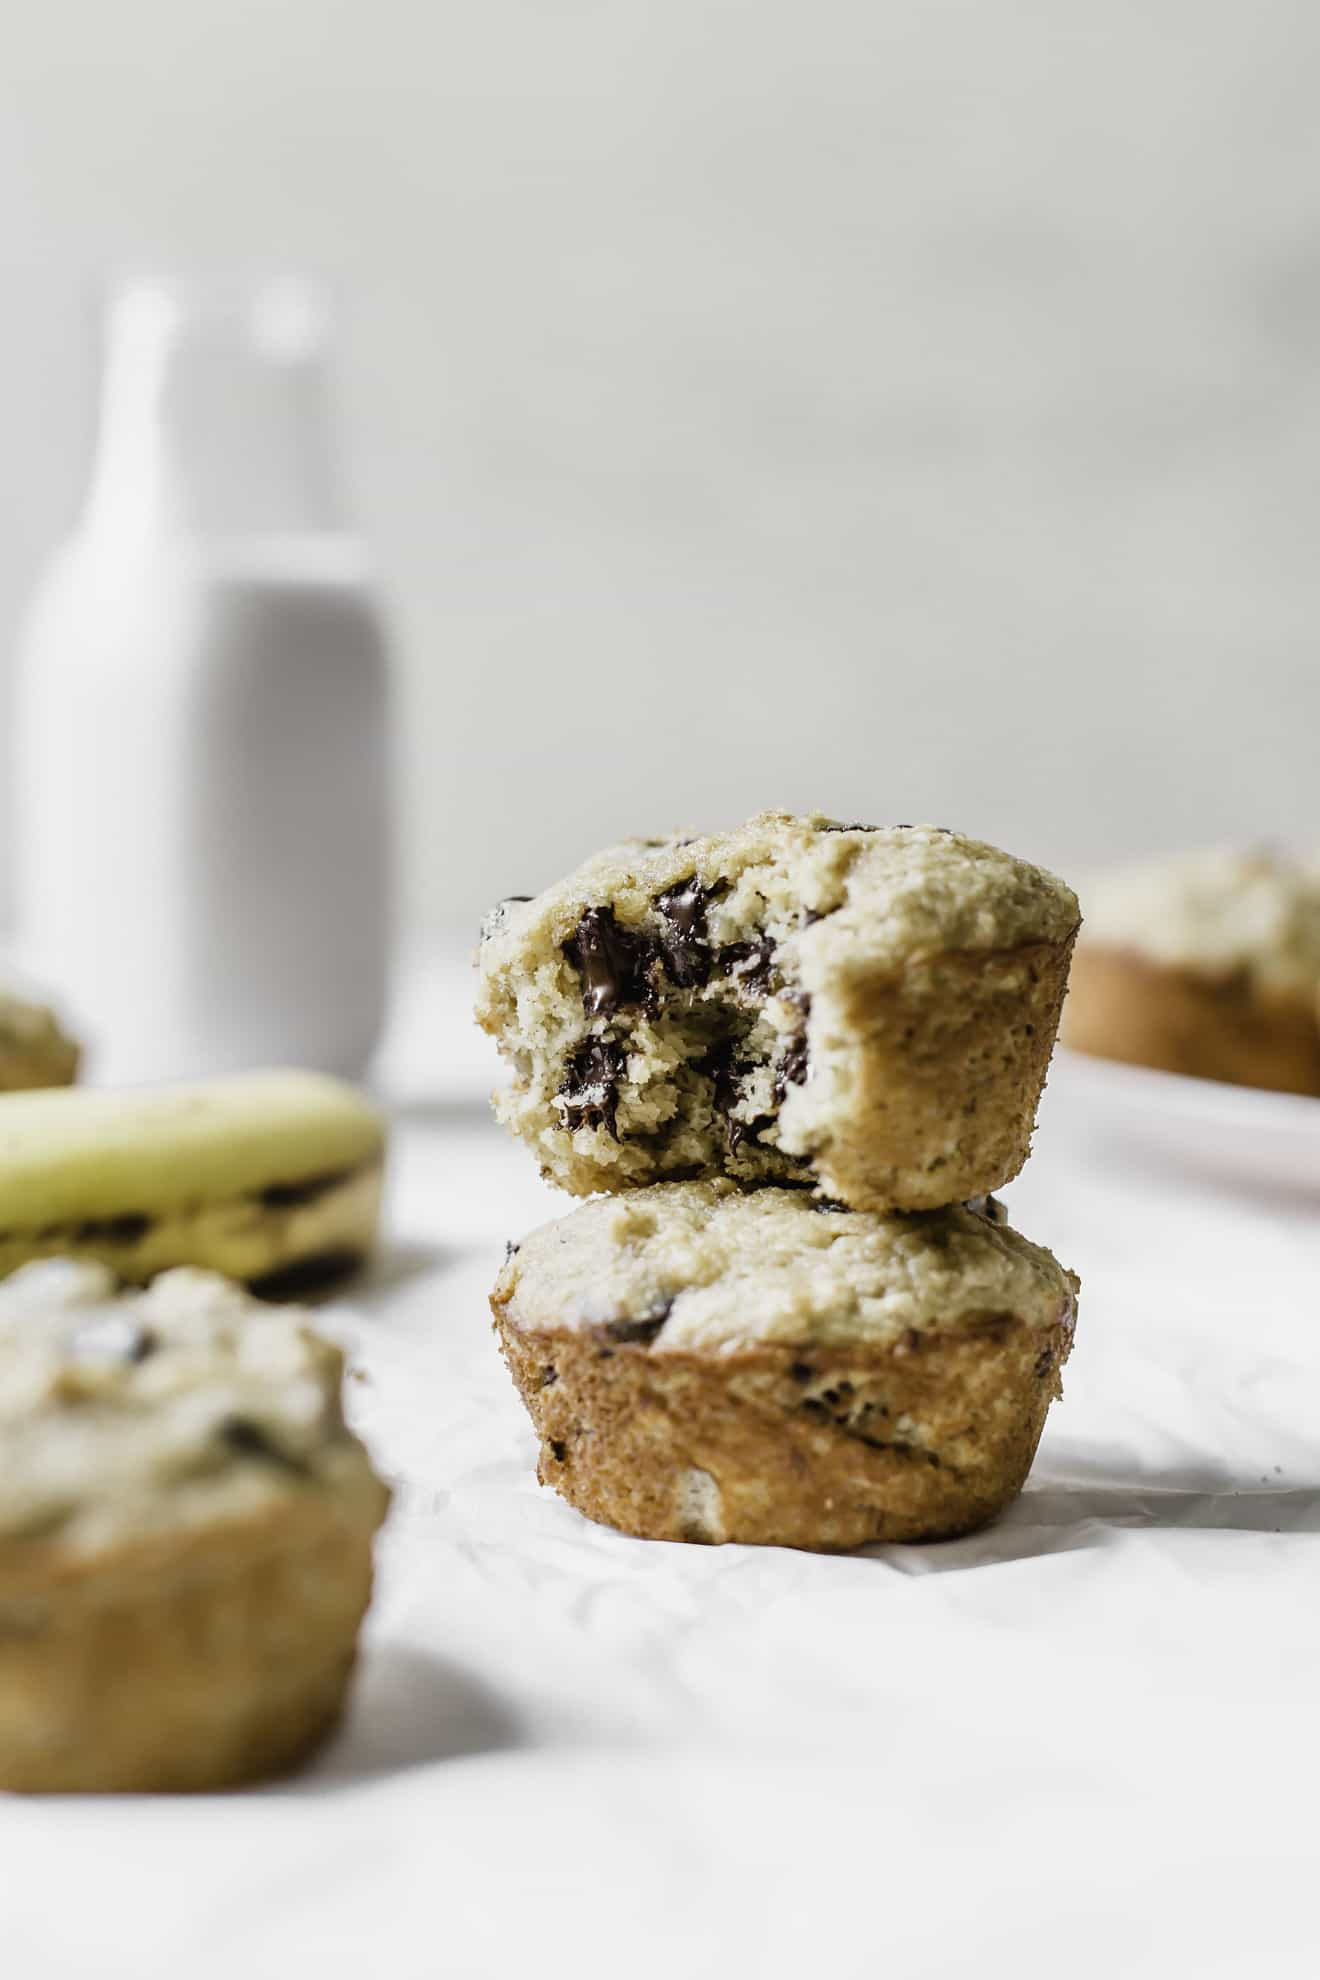 This is a side view of two banana muffins stacked on top of each other. The top muffin has a bite taken out revealing melty chocolate chips. The muffins sit on a white surface with a banana, more muffins, and a jug of milk blurred in the background.